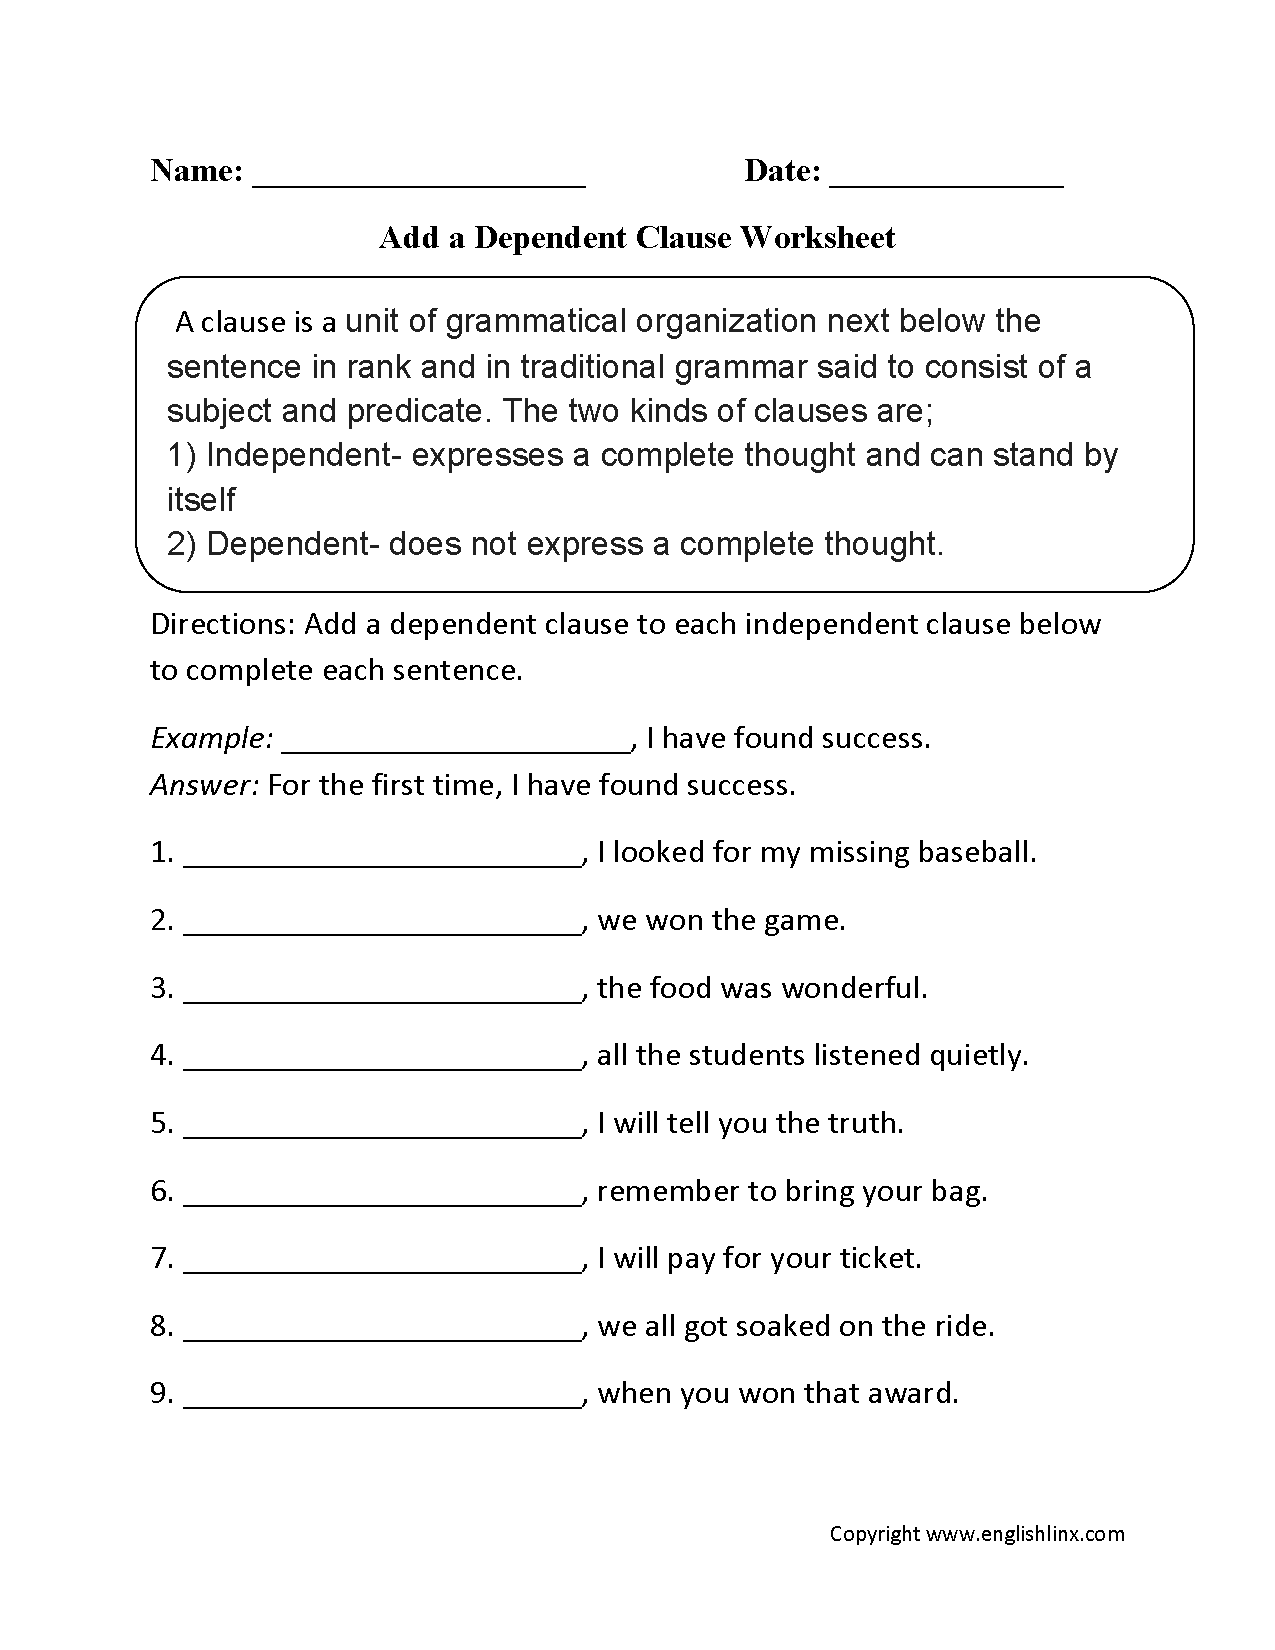 Add Dependent Clause Worksheets With Images